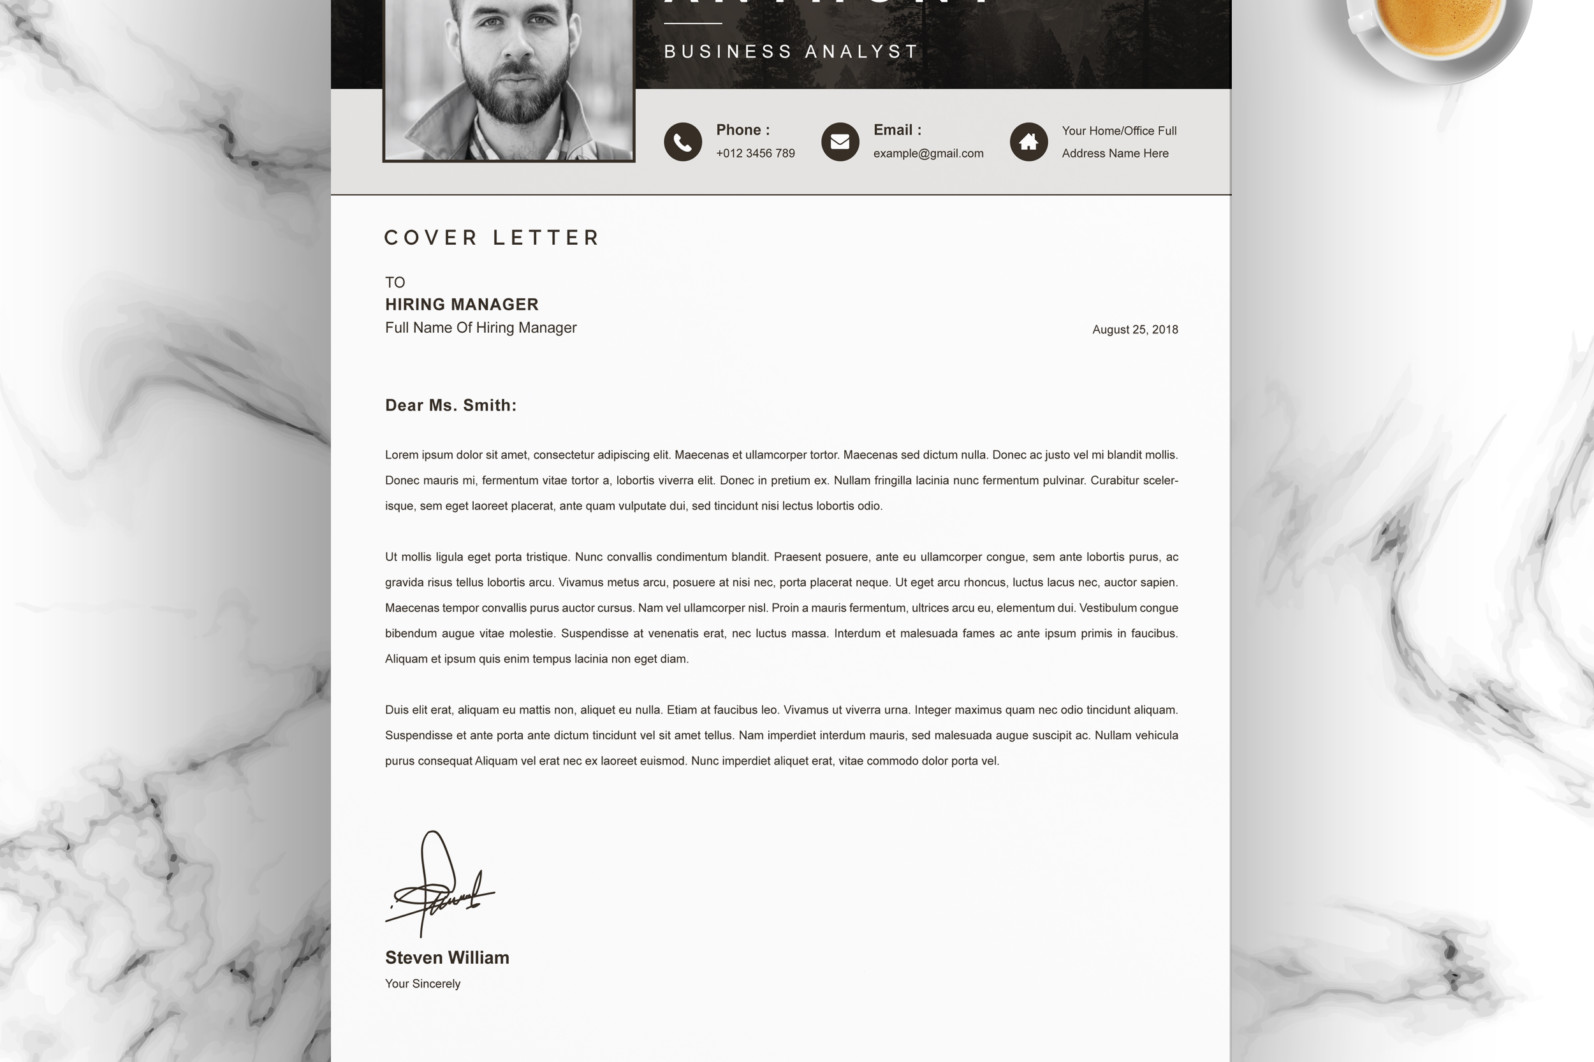 Professional Resume, Instant Download - 04 Resume Cover Letter Page Free Resume Design Template 9 -